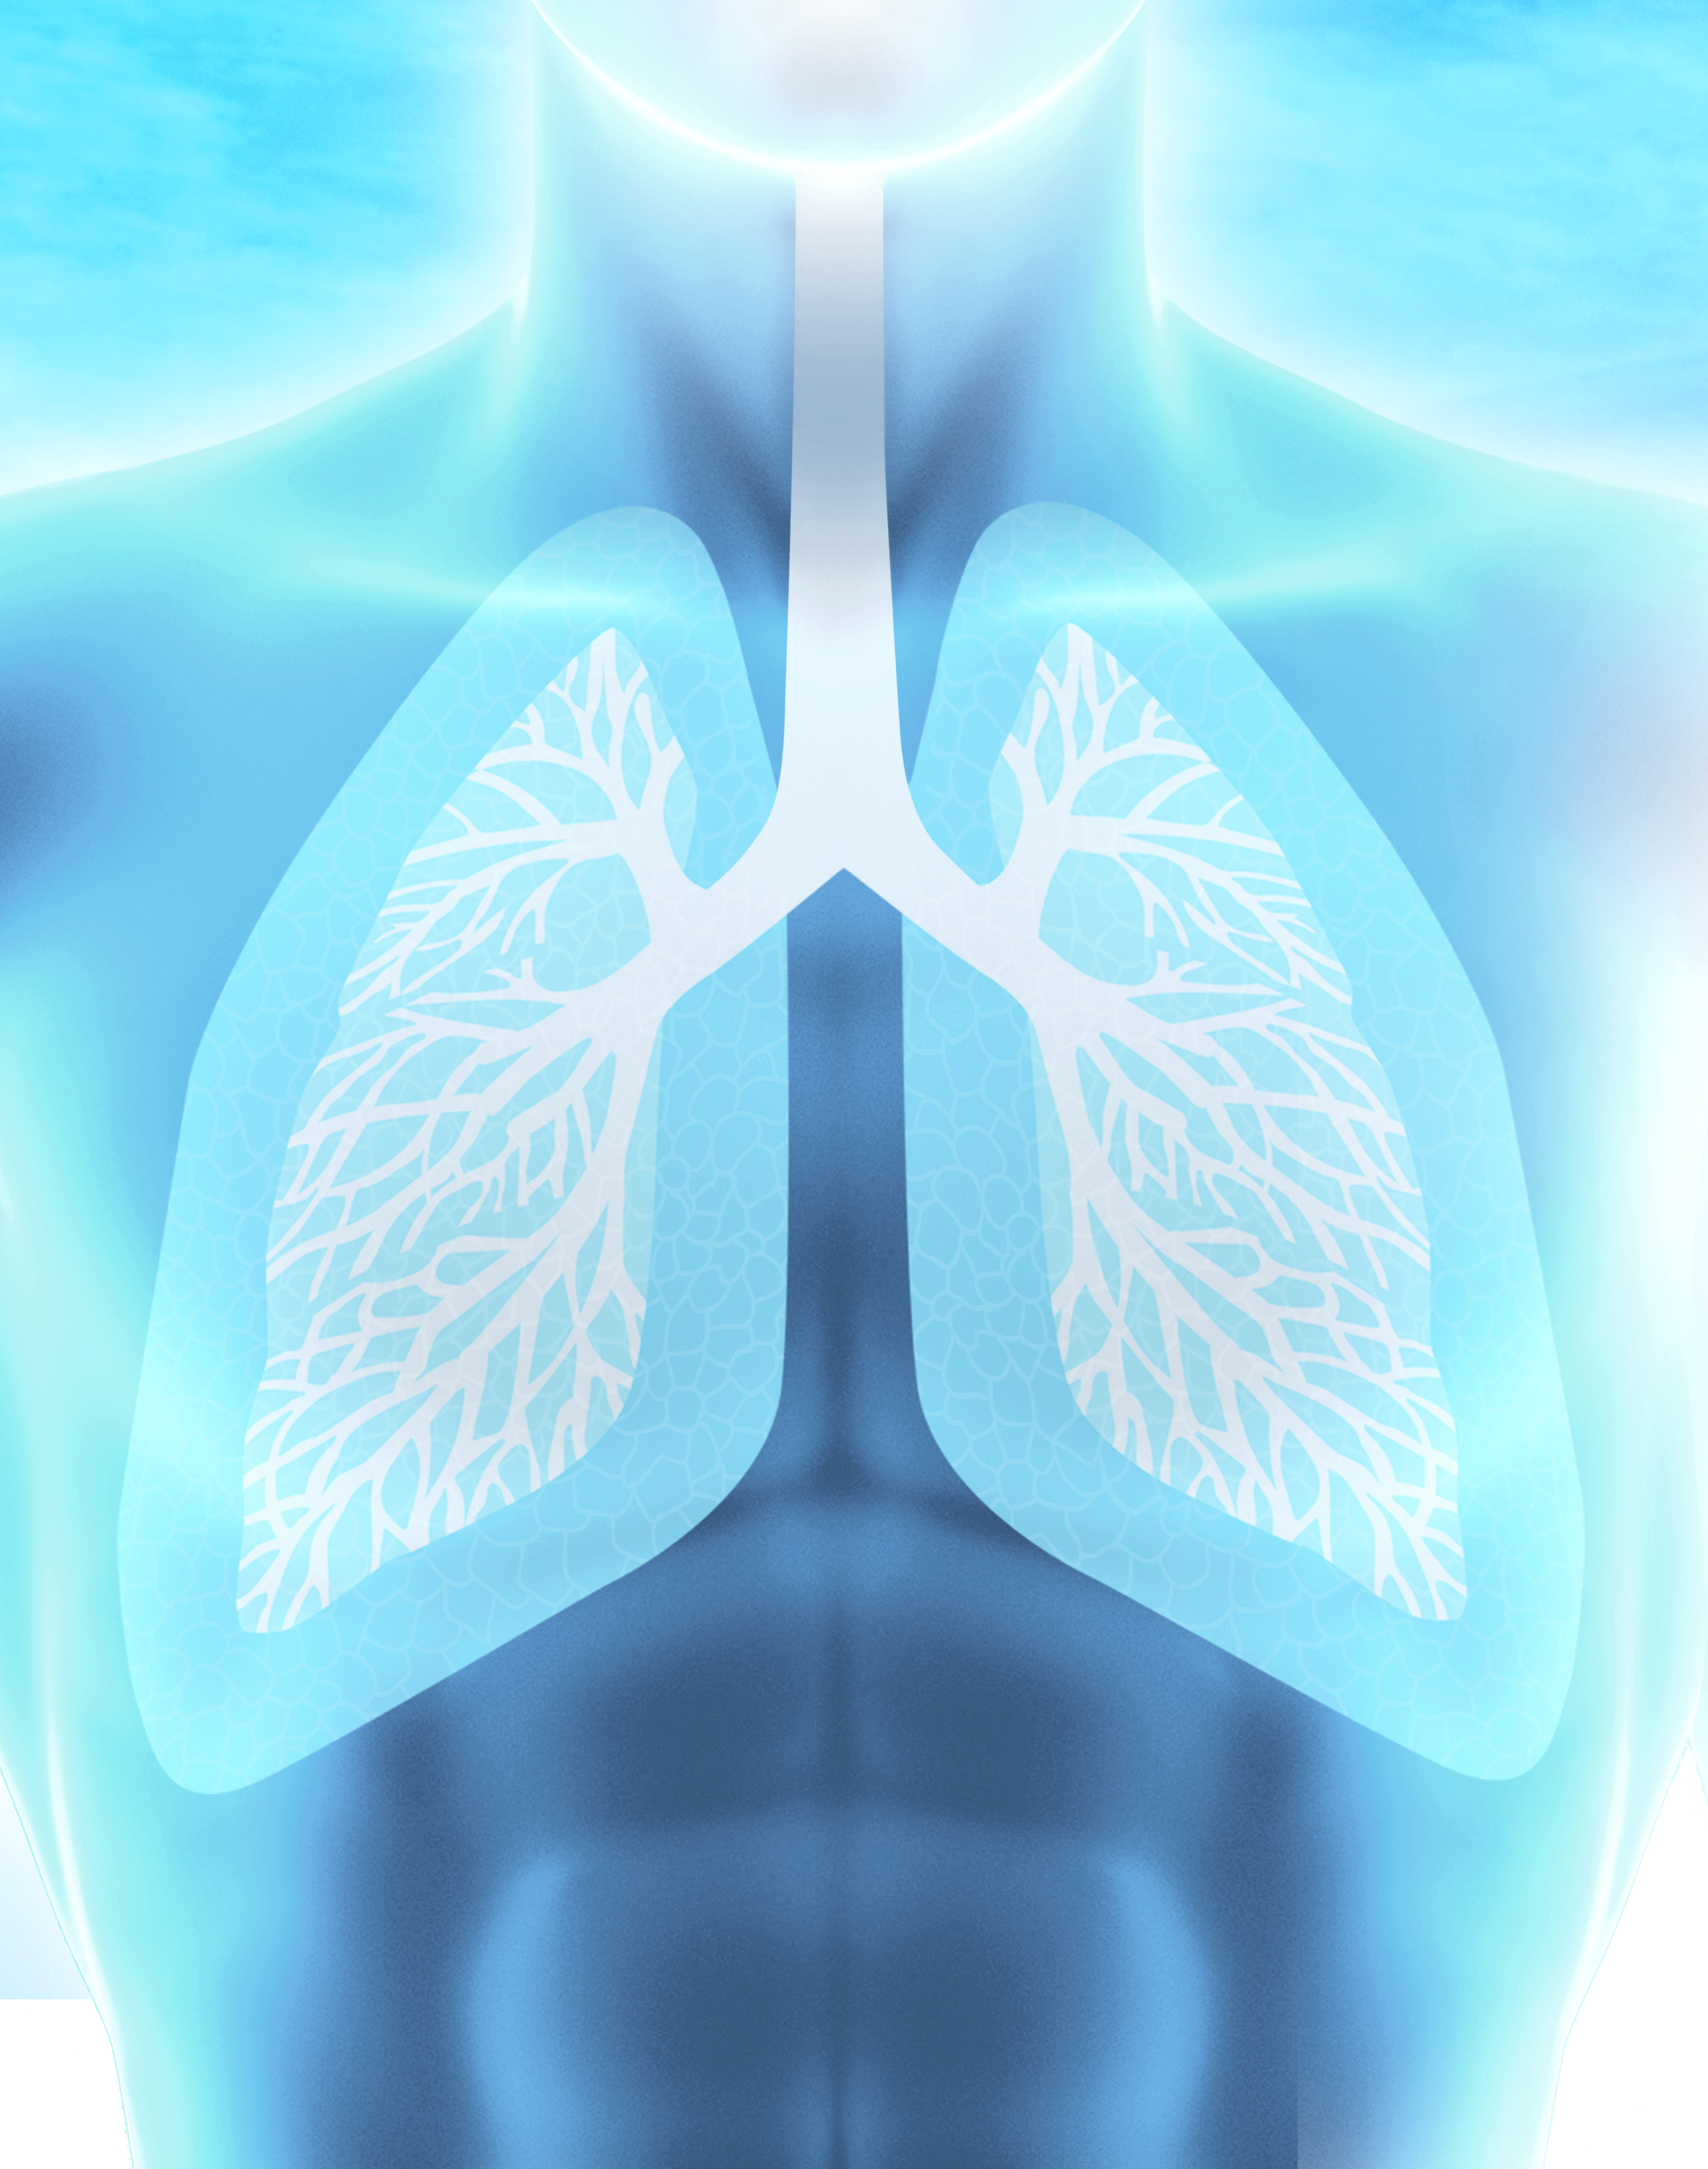 Lung health is taken seriously at St. Clair Hospital in Pittsburgh.